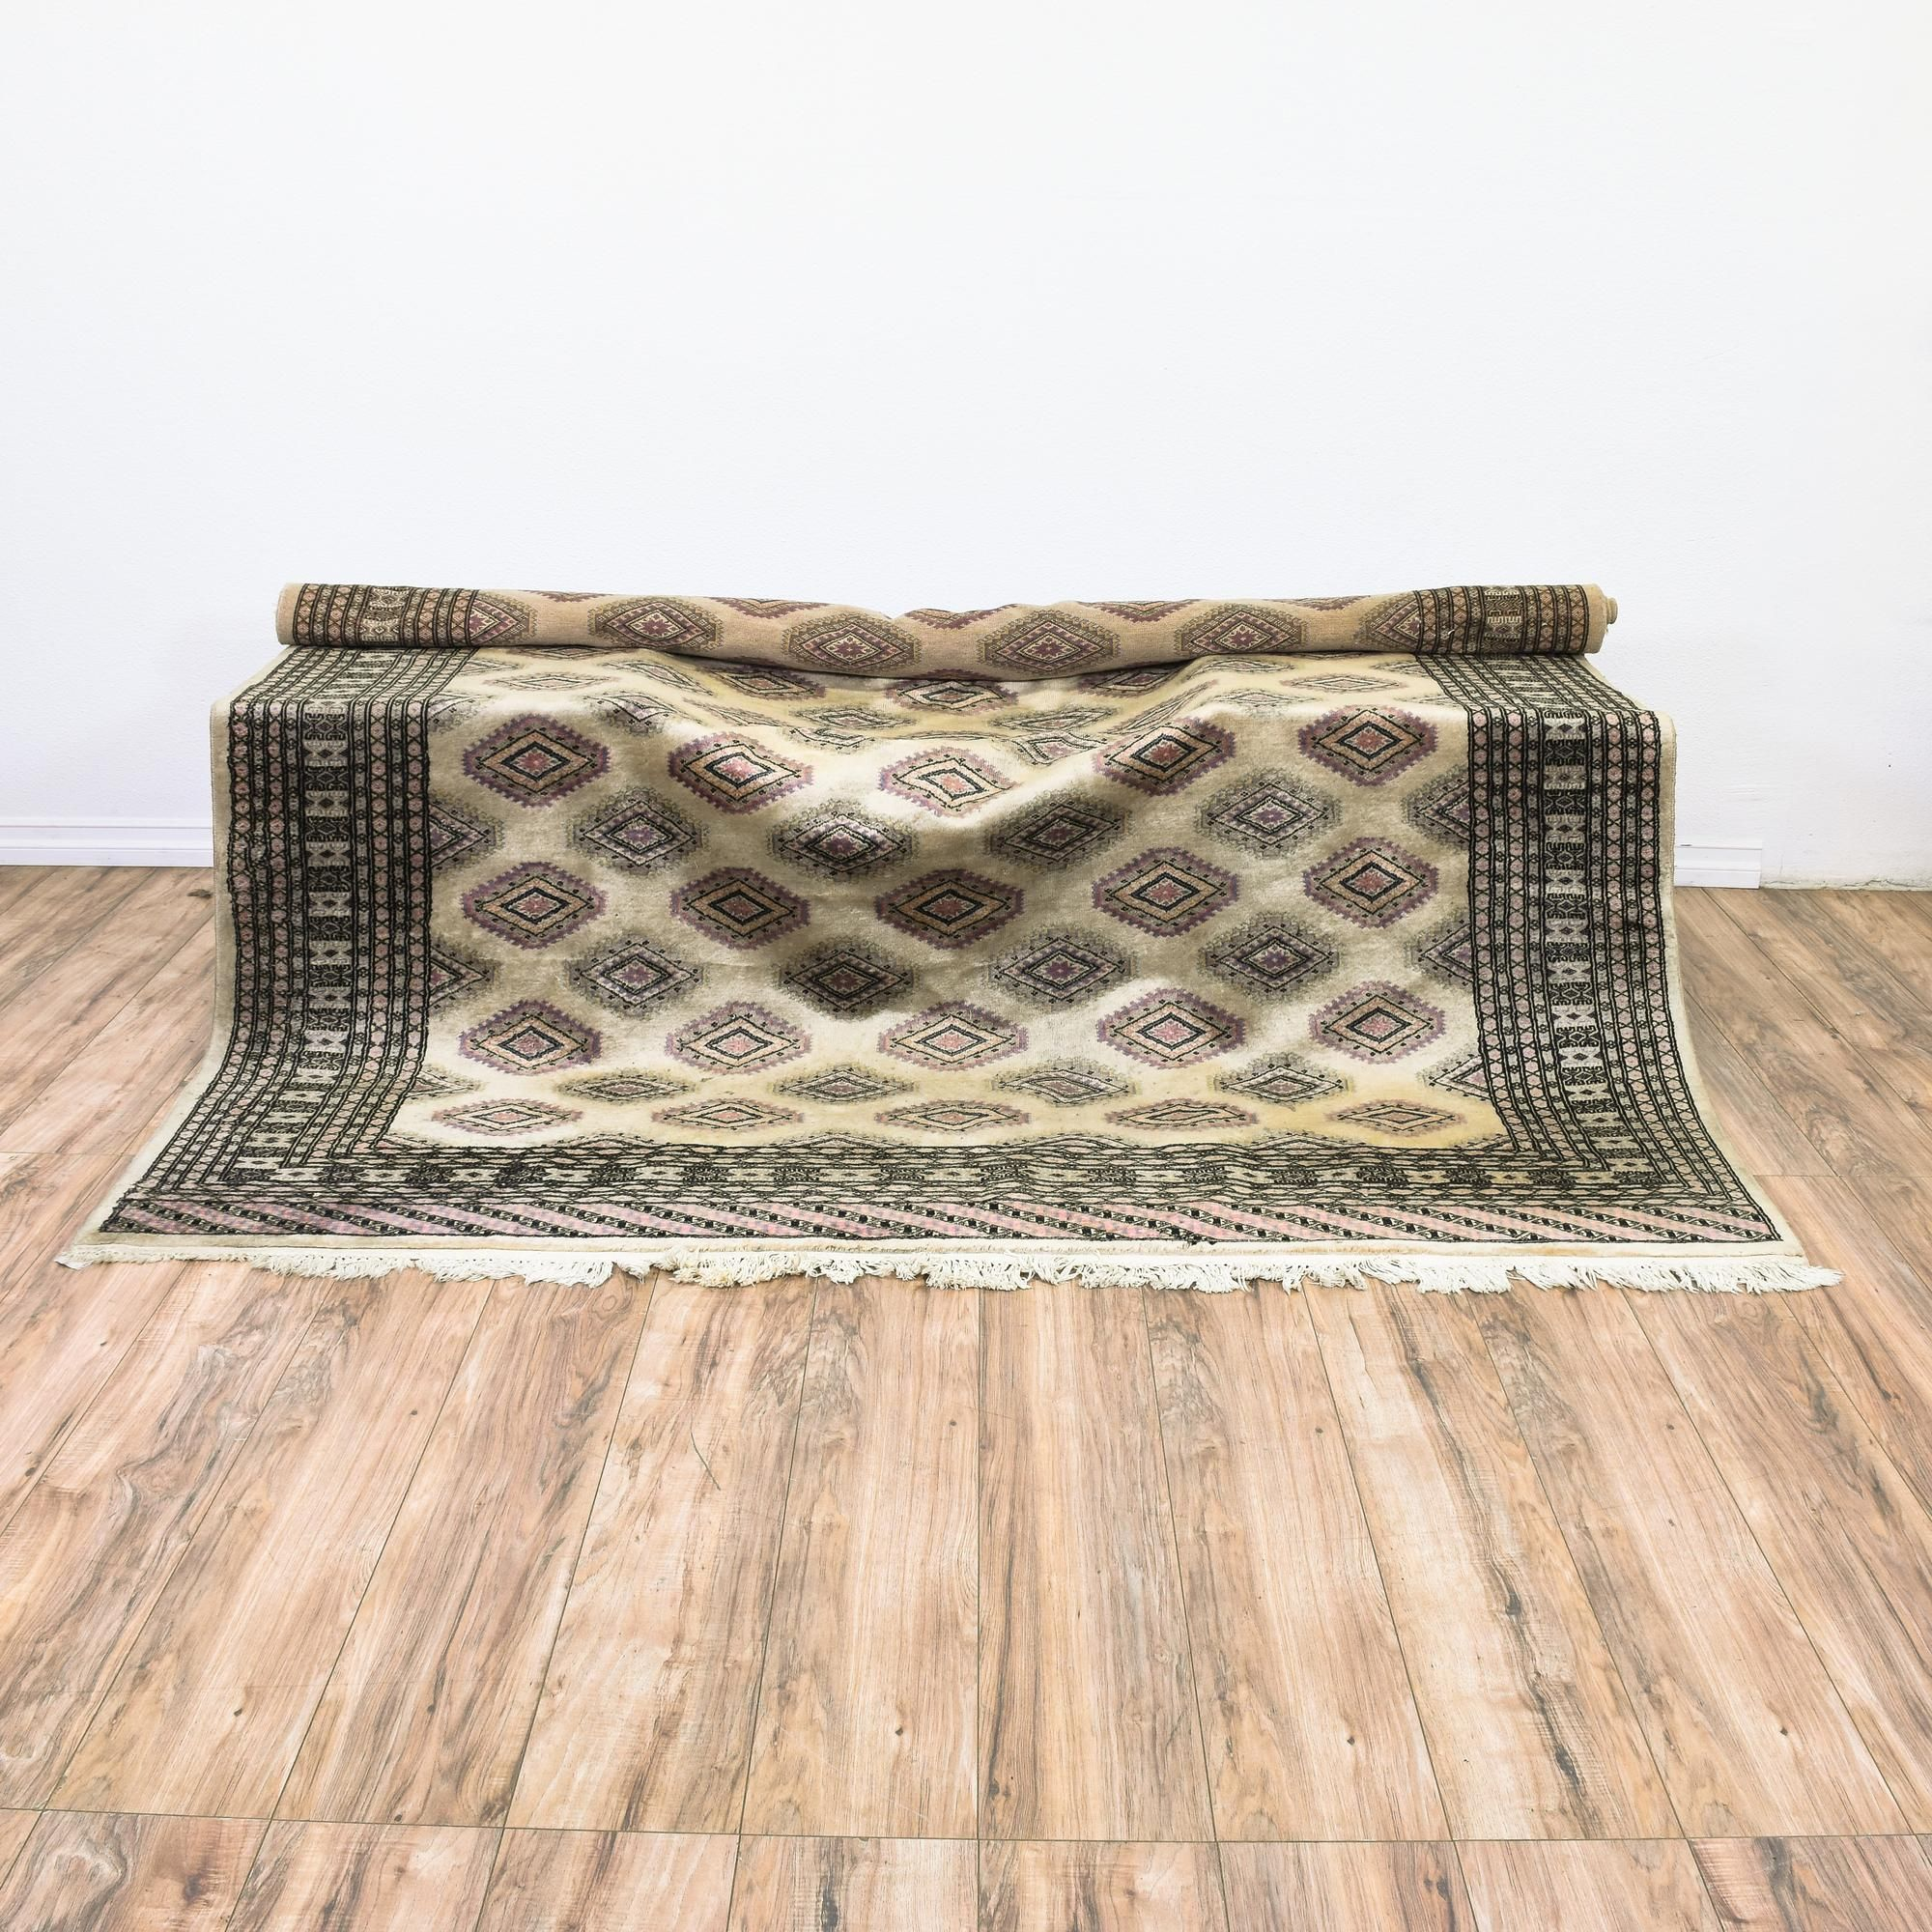 This Pakistan Bokhara rug is woven in